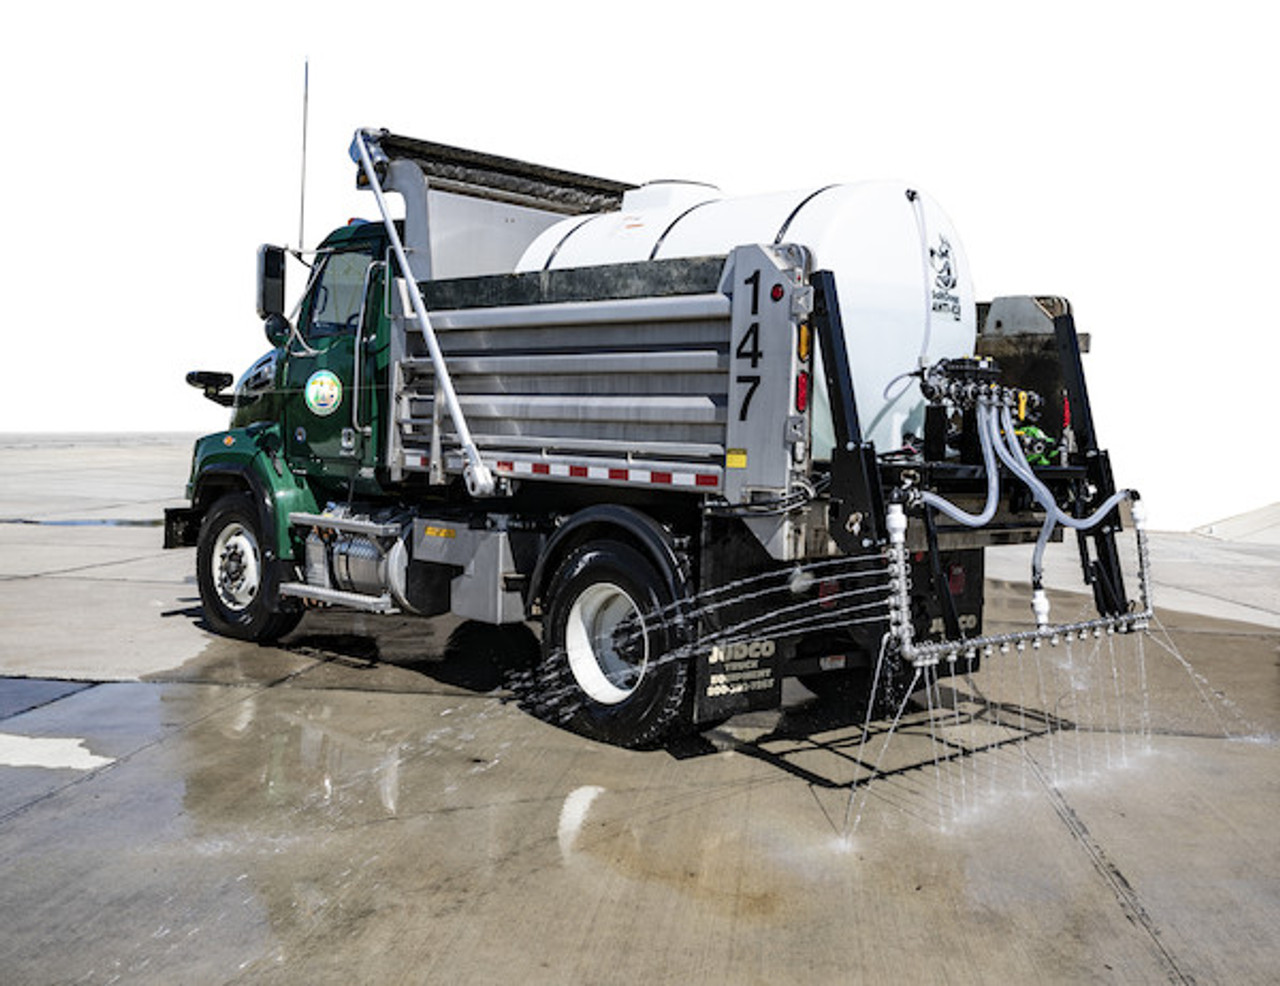 6192710 BUYERS SALTDOGG 1065 Gallon Hydraulic Anti-Ice System With One-Lane Spray Bar And Manual Application Rate Control  #4